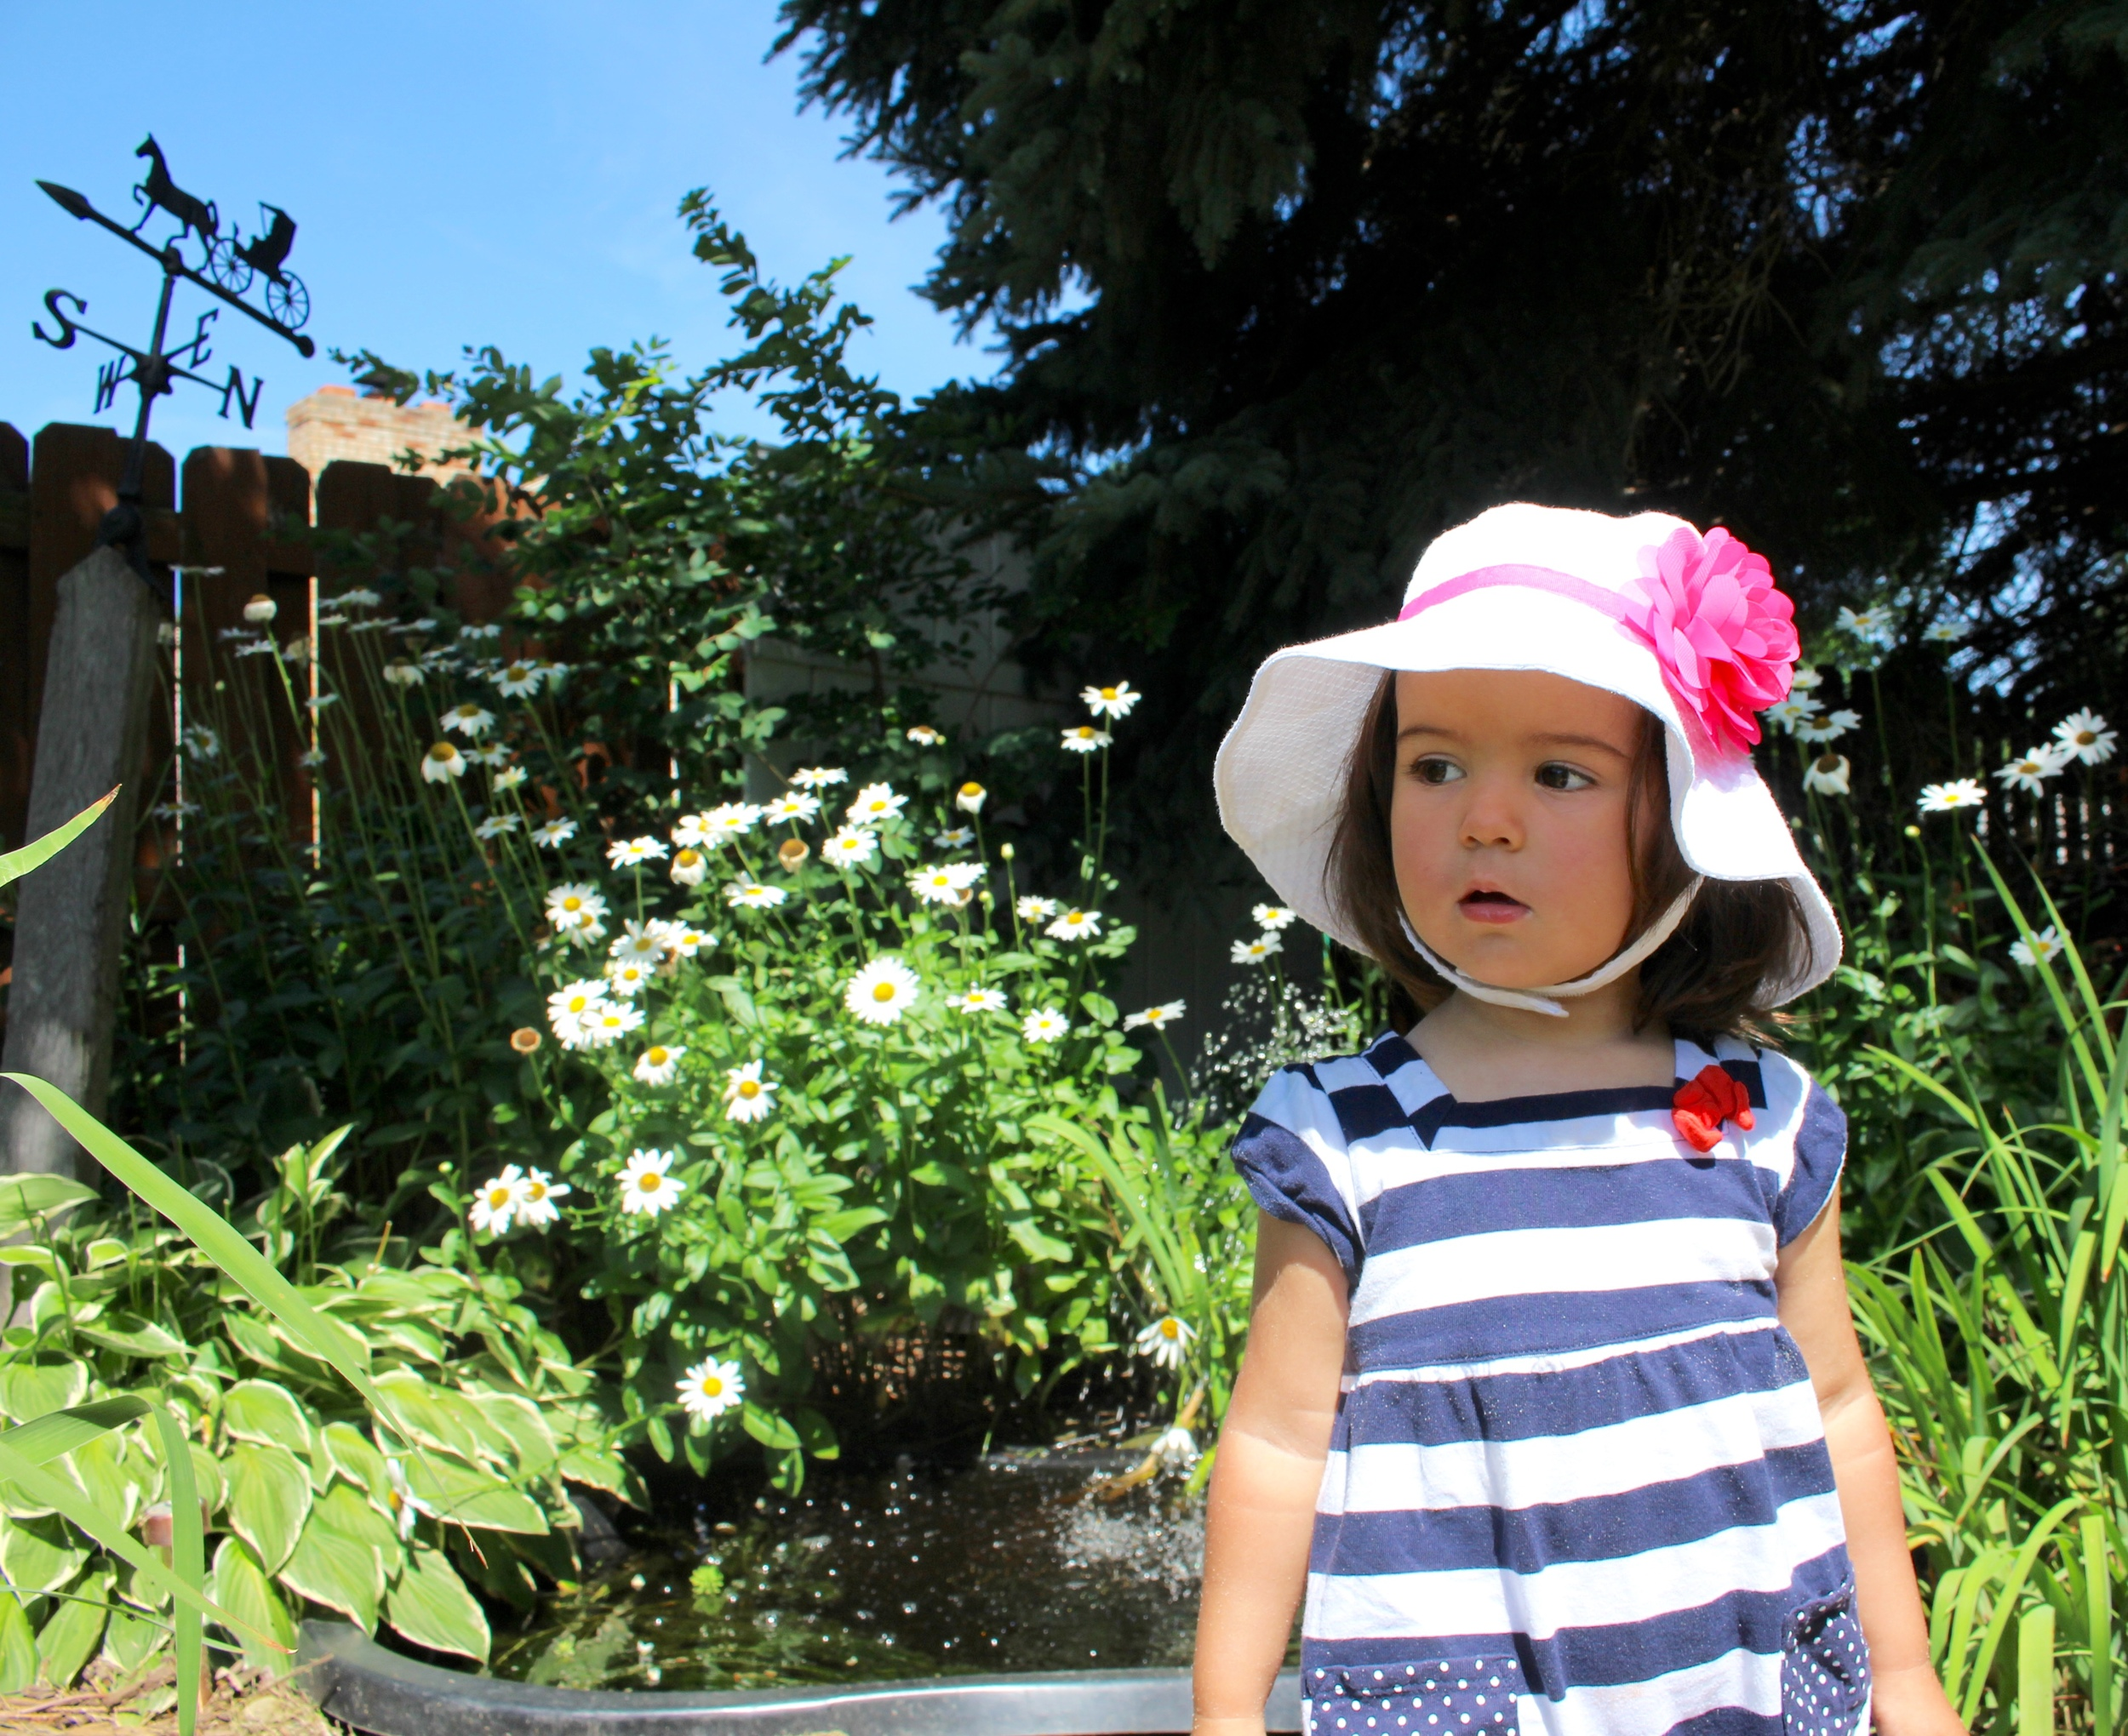 Dominika loved exploring grandma's backyard. She kept asking when the goldfish will come out.